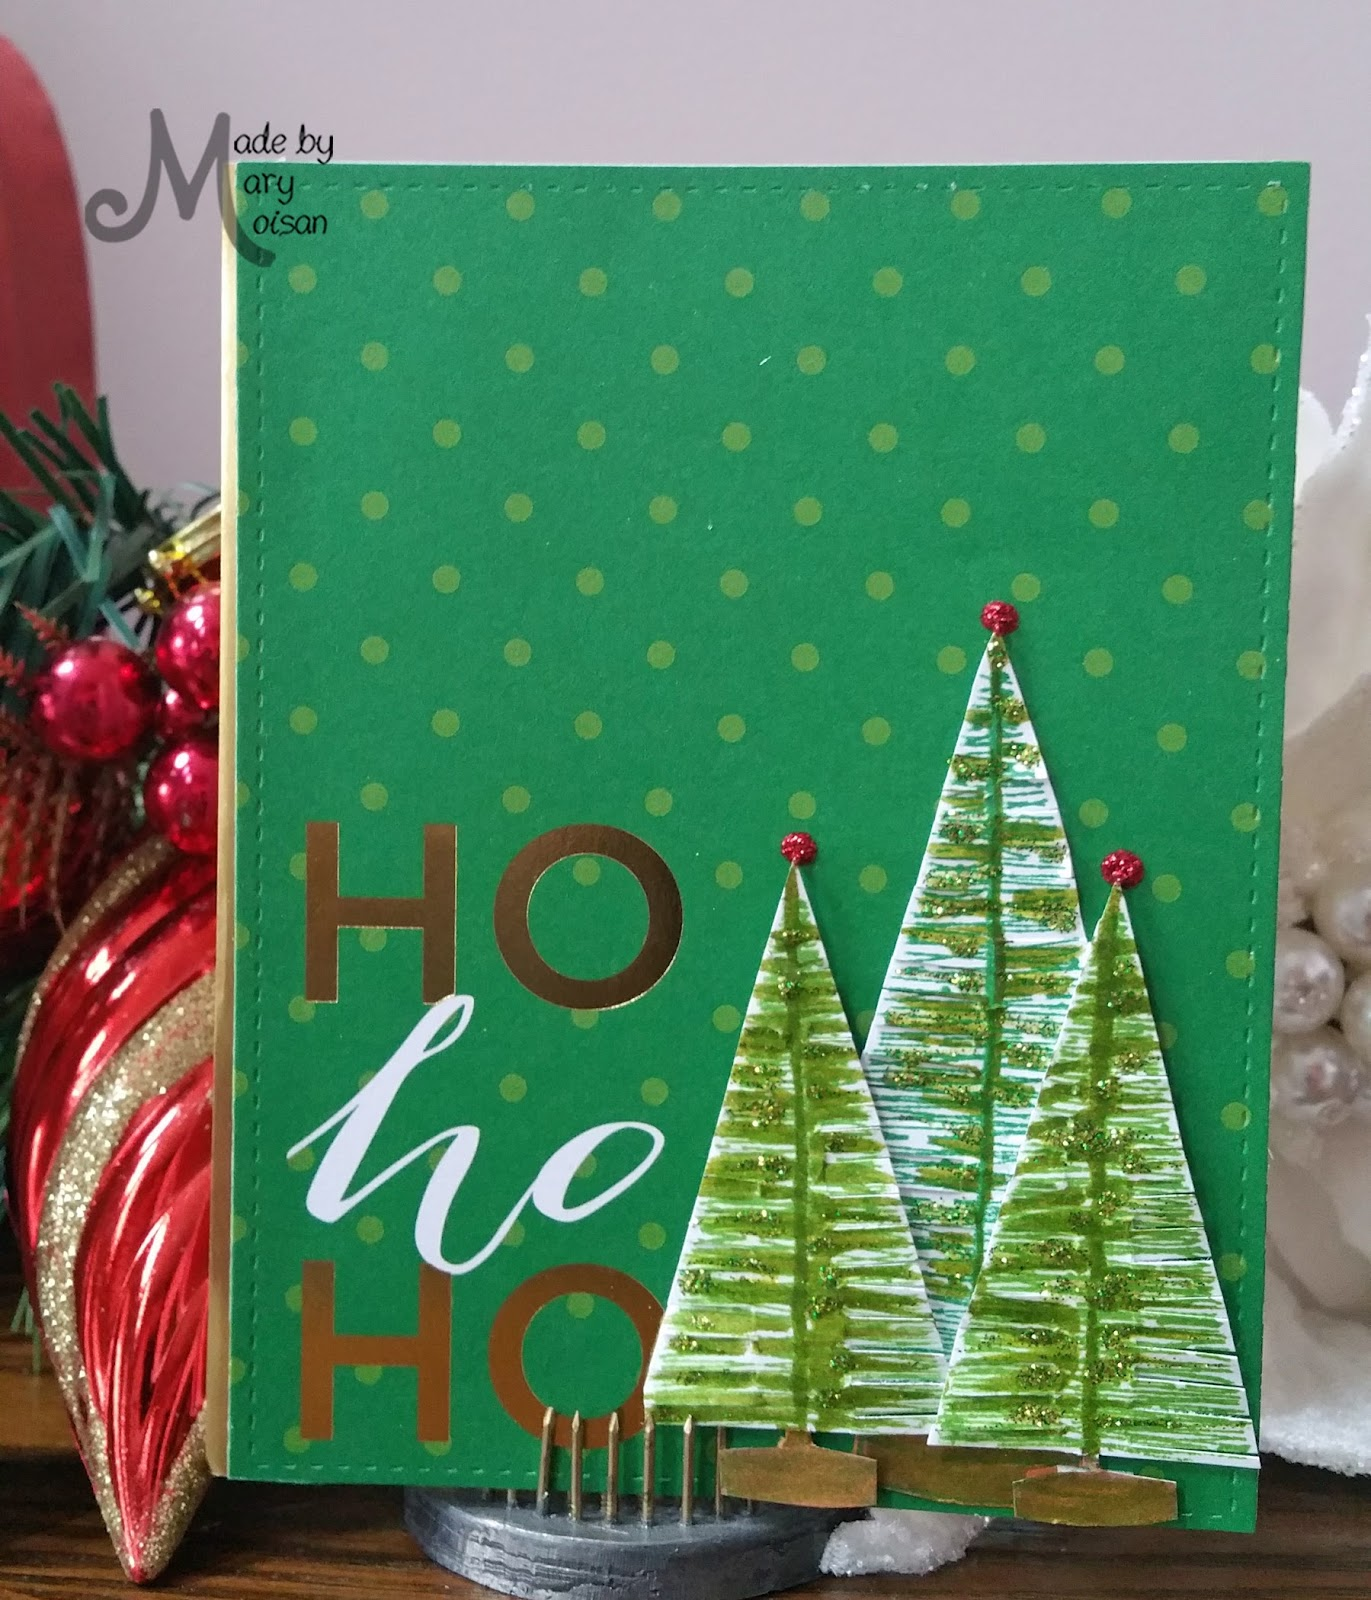 Where Does Christmas Trees Come From: Come Craft W/Me : Holiday 2016